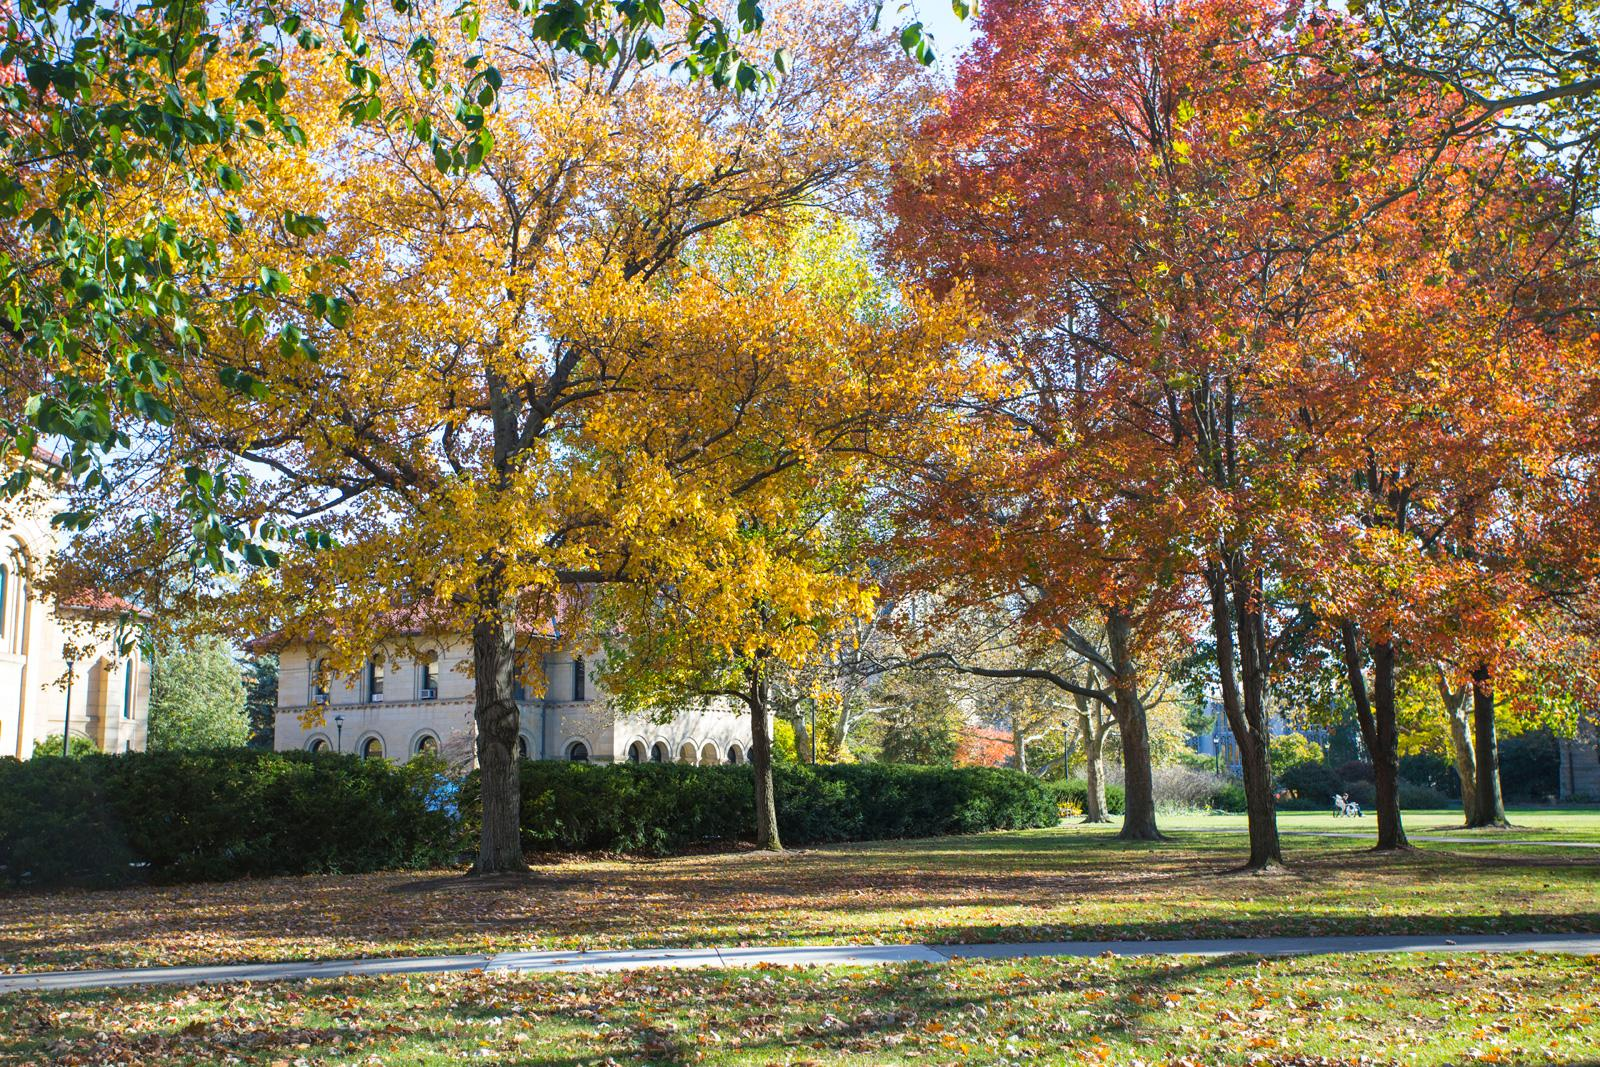 Fall foliage and campus buildings.